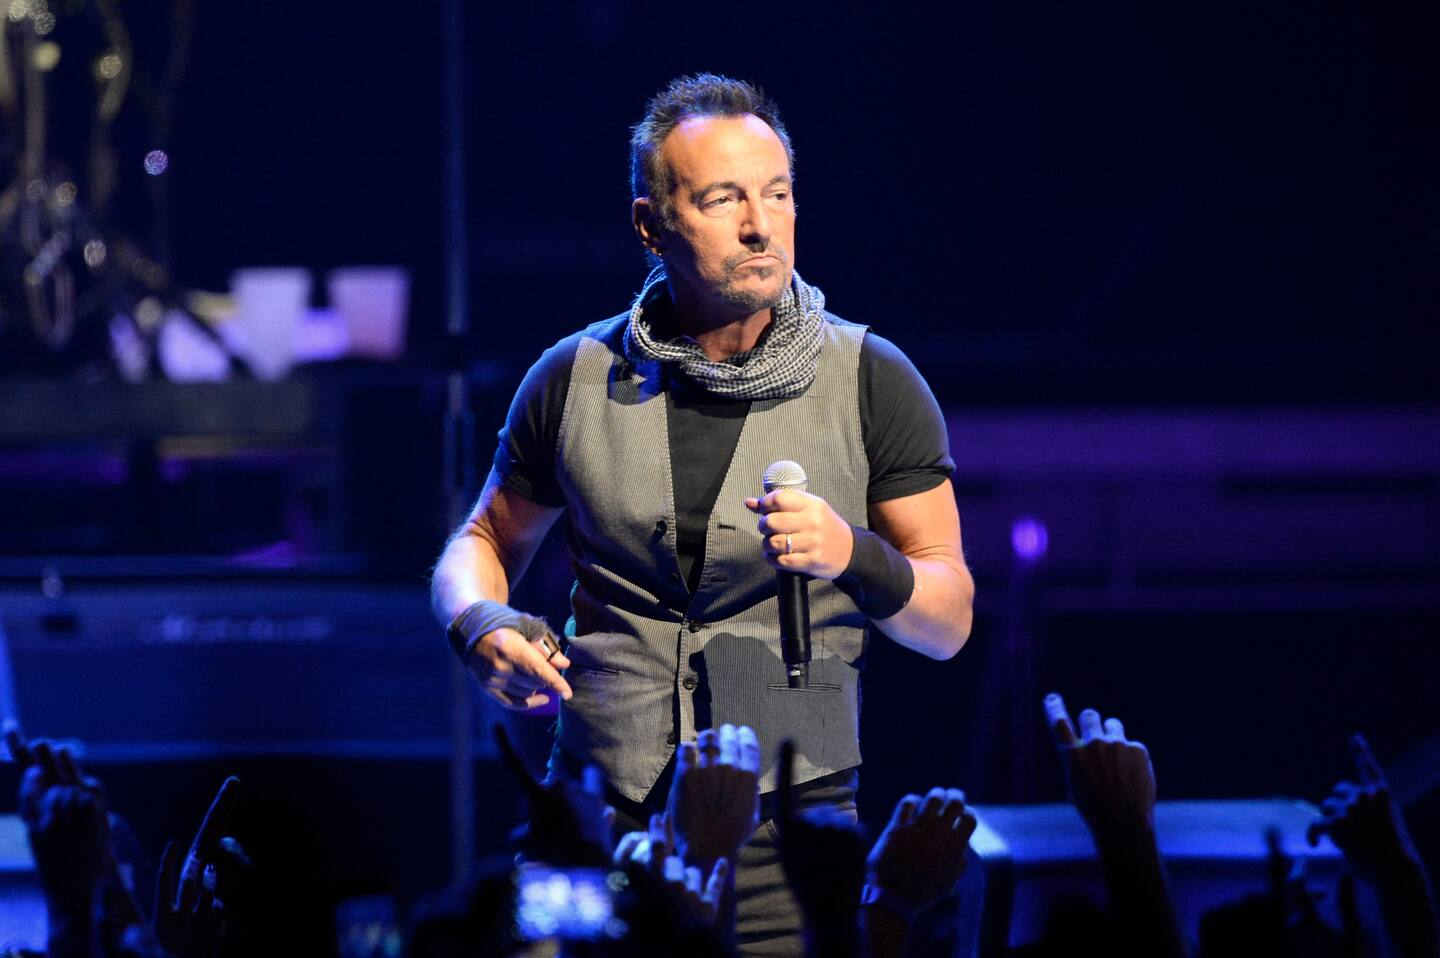 Bruce Springsteen's DWI and reckless driving charges dropped